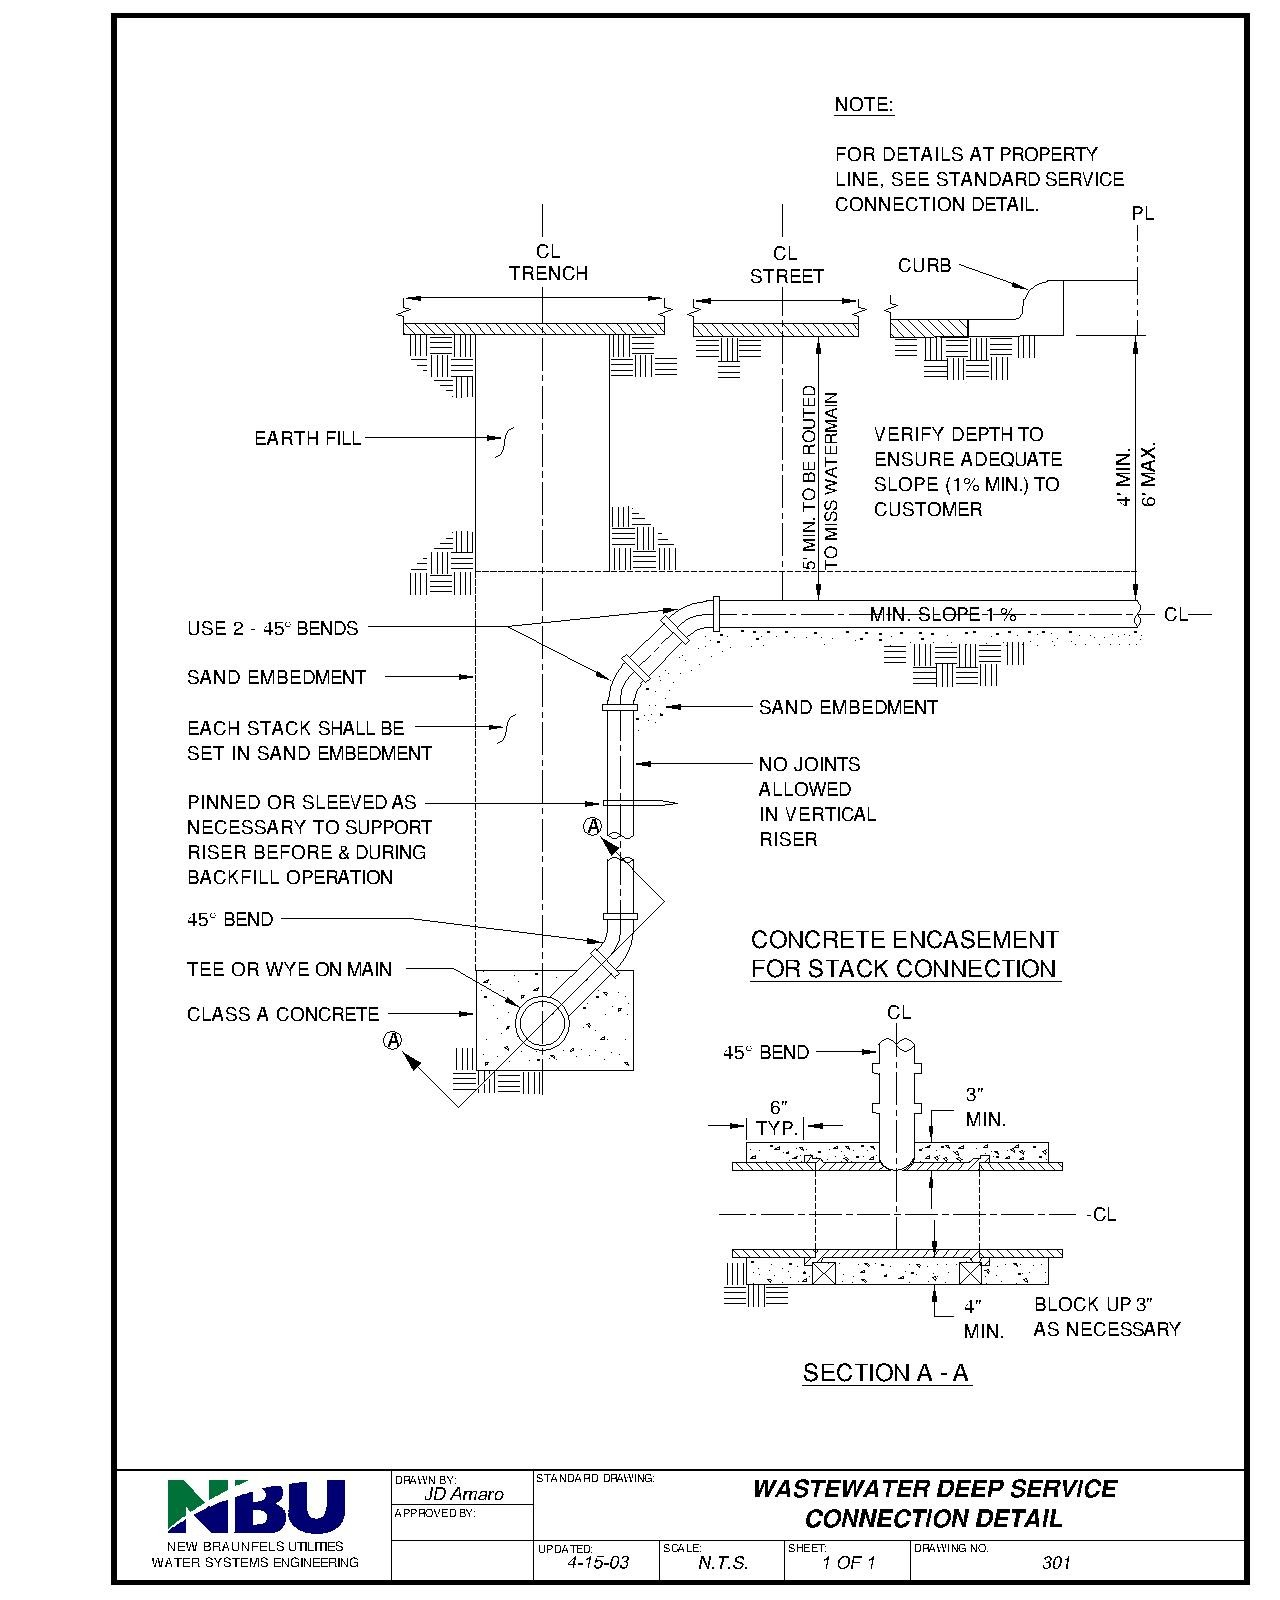 Connection detail line sewer Sewer Connections: